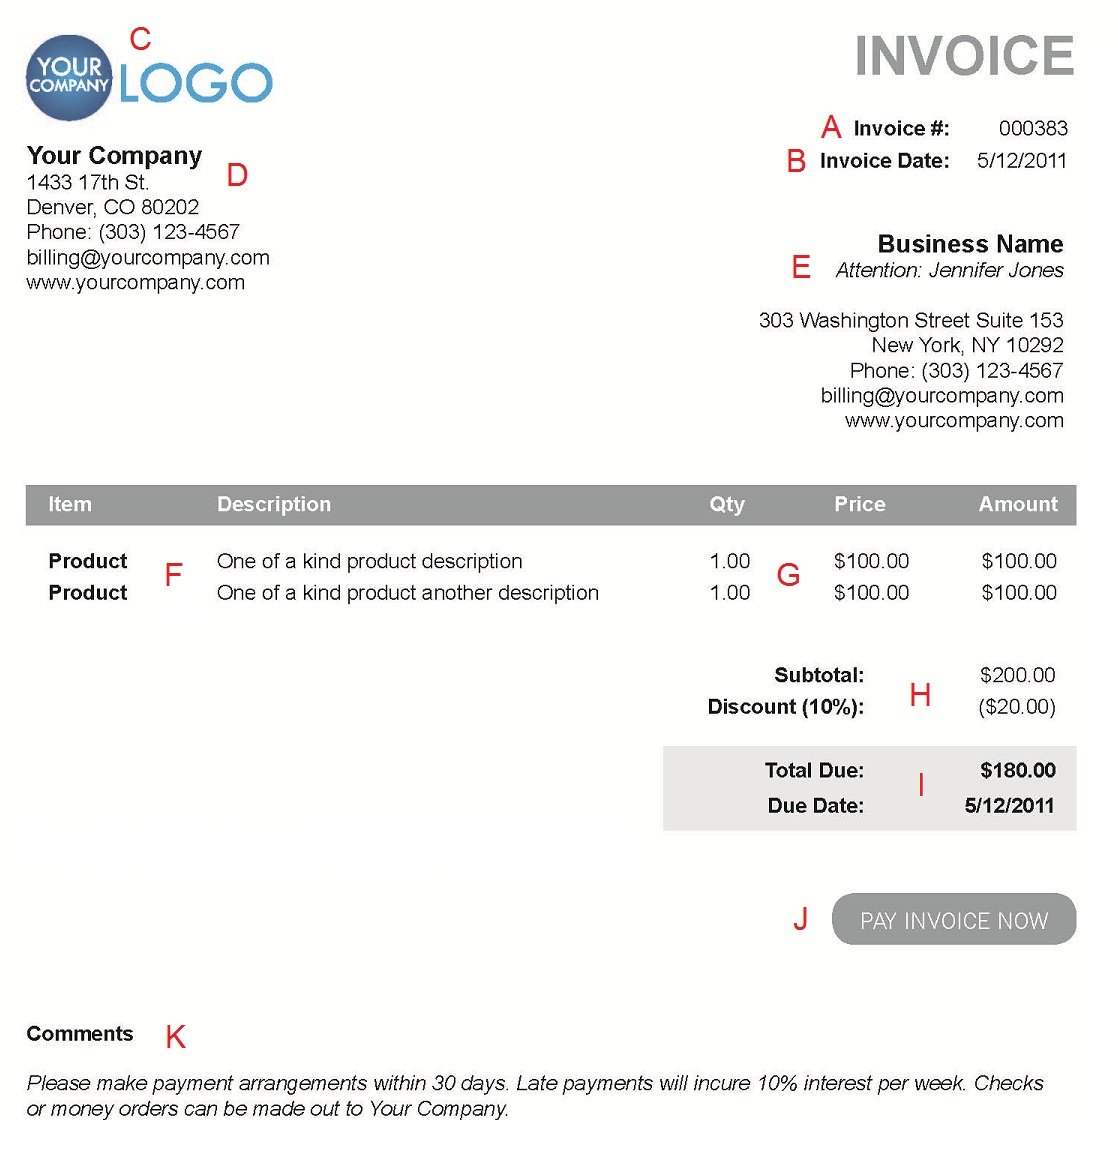 Theologygeekblogus  Unusual The  Different Sections Of An Electronic Payment Invoice With Excellent A  With Charming Invoice Factoring Also Invoice Asap In Addition Paypal Invoice And Online Invoicing As Well As Invoice Form Additionally Vat Invoice From Paysimplecom With Theologygeekblogus  Excellent The  Different Sections Of An Electronic Payment Invoice With Charming A  And Unusual Invoice Factoring Also Invoice Asap In Addition Paypal Invoice From Paysimplecom